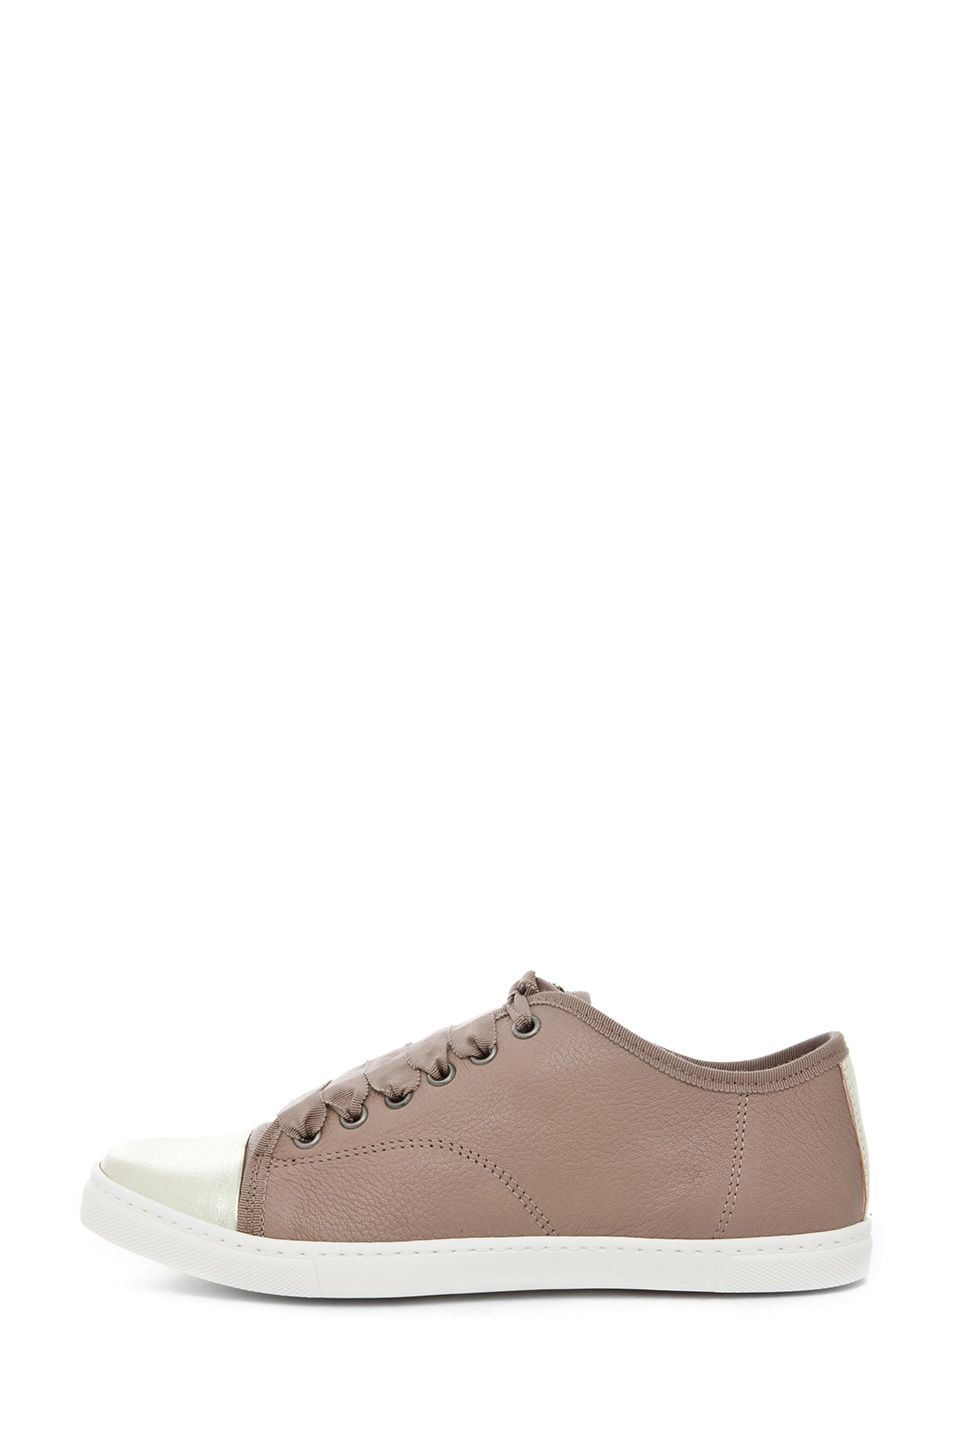 Image 1 of Lanvin Low Top Sneaker in Gold & Beige